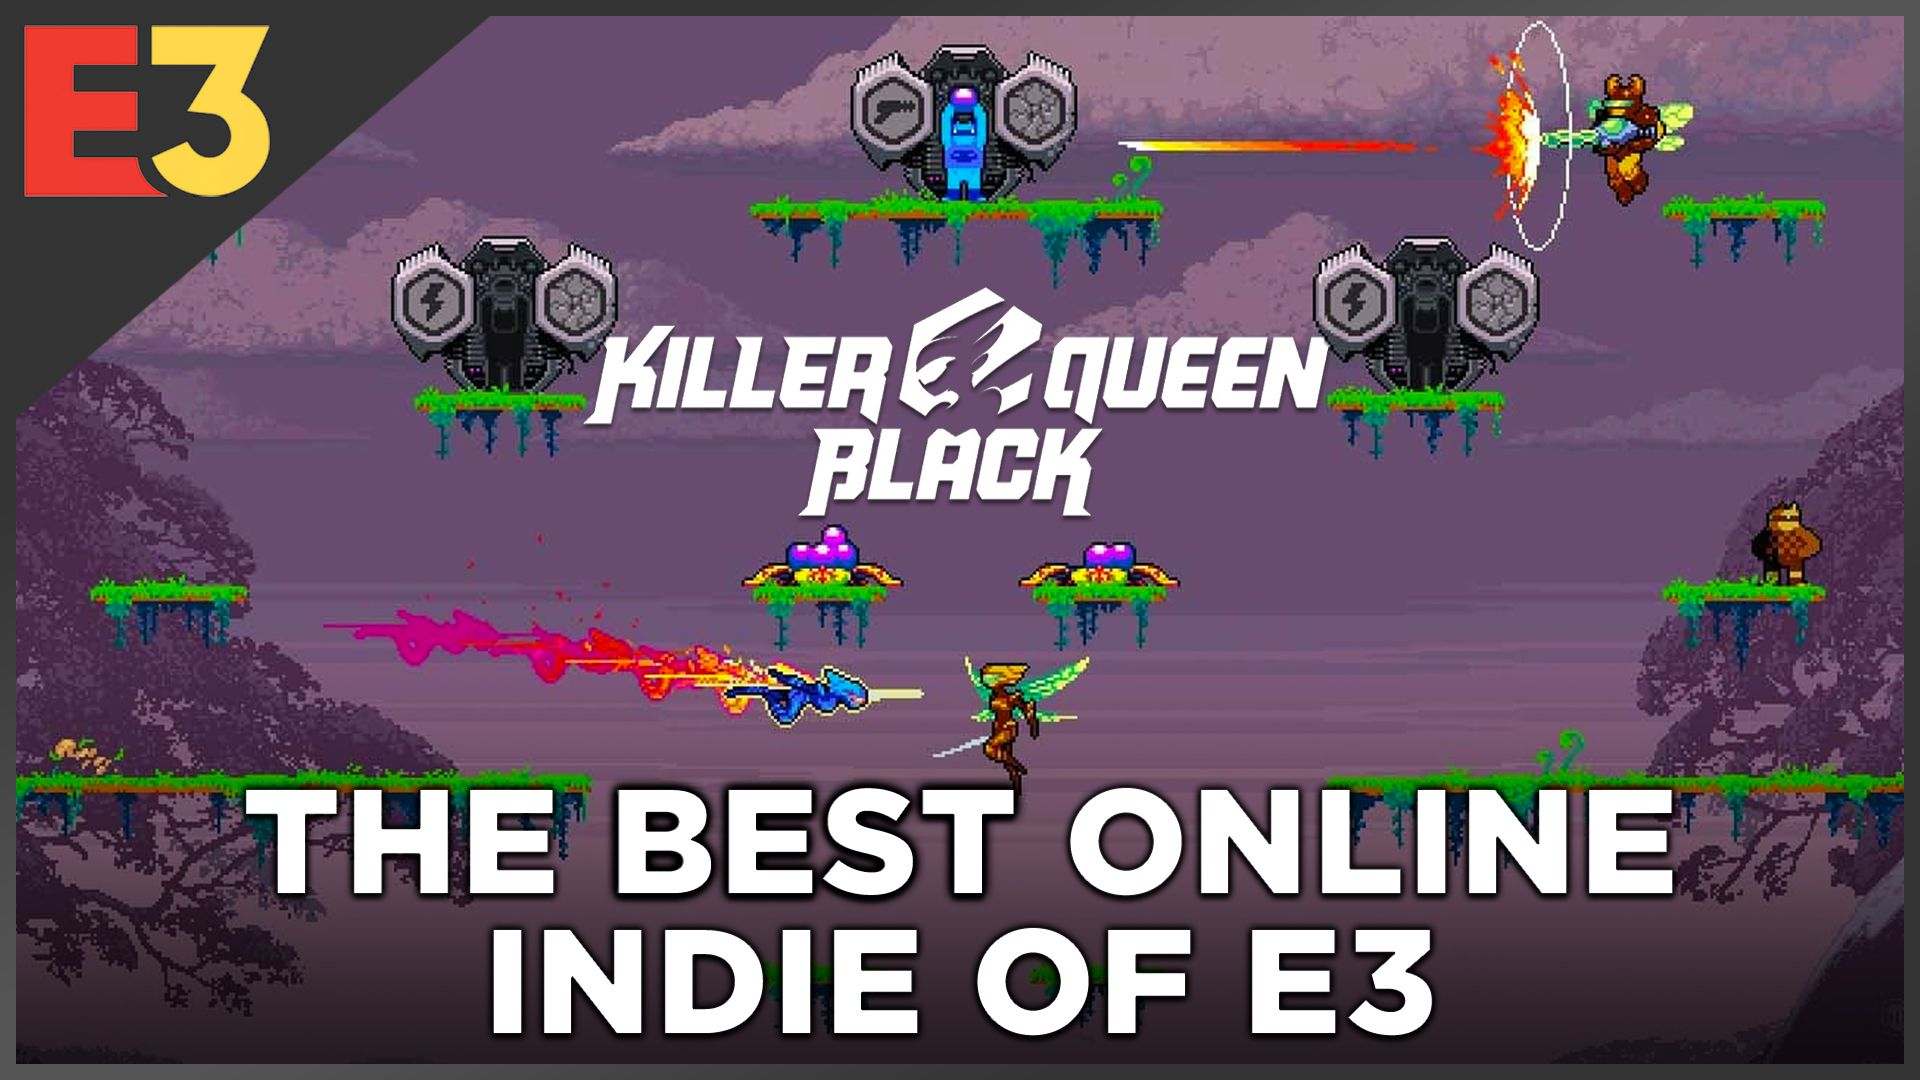 Killer Queen Black for Switch has the best online mechanic at E3